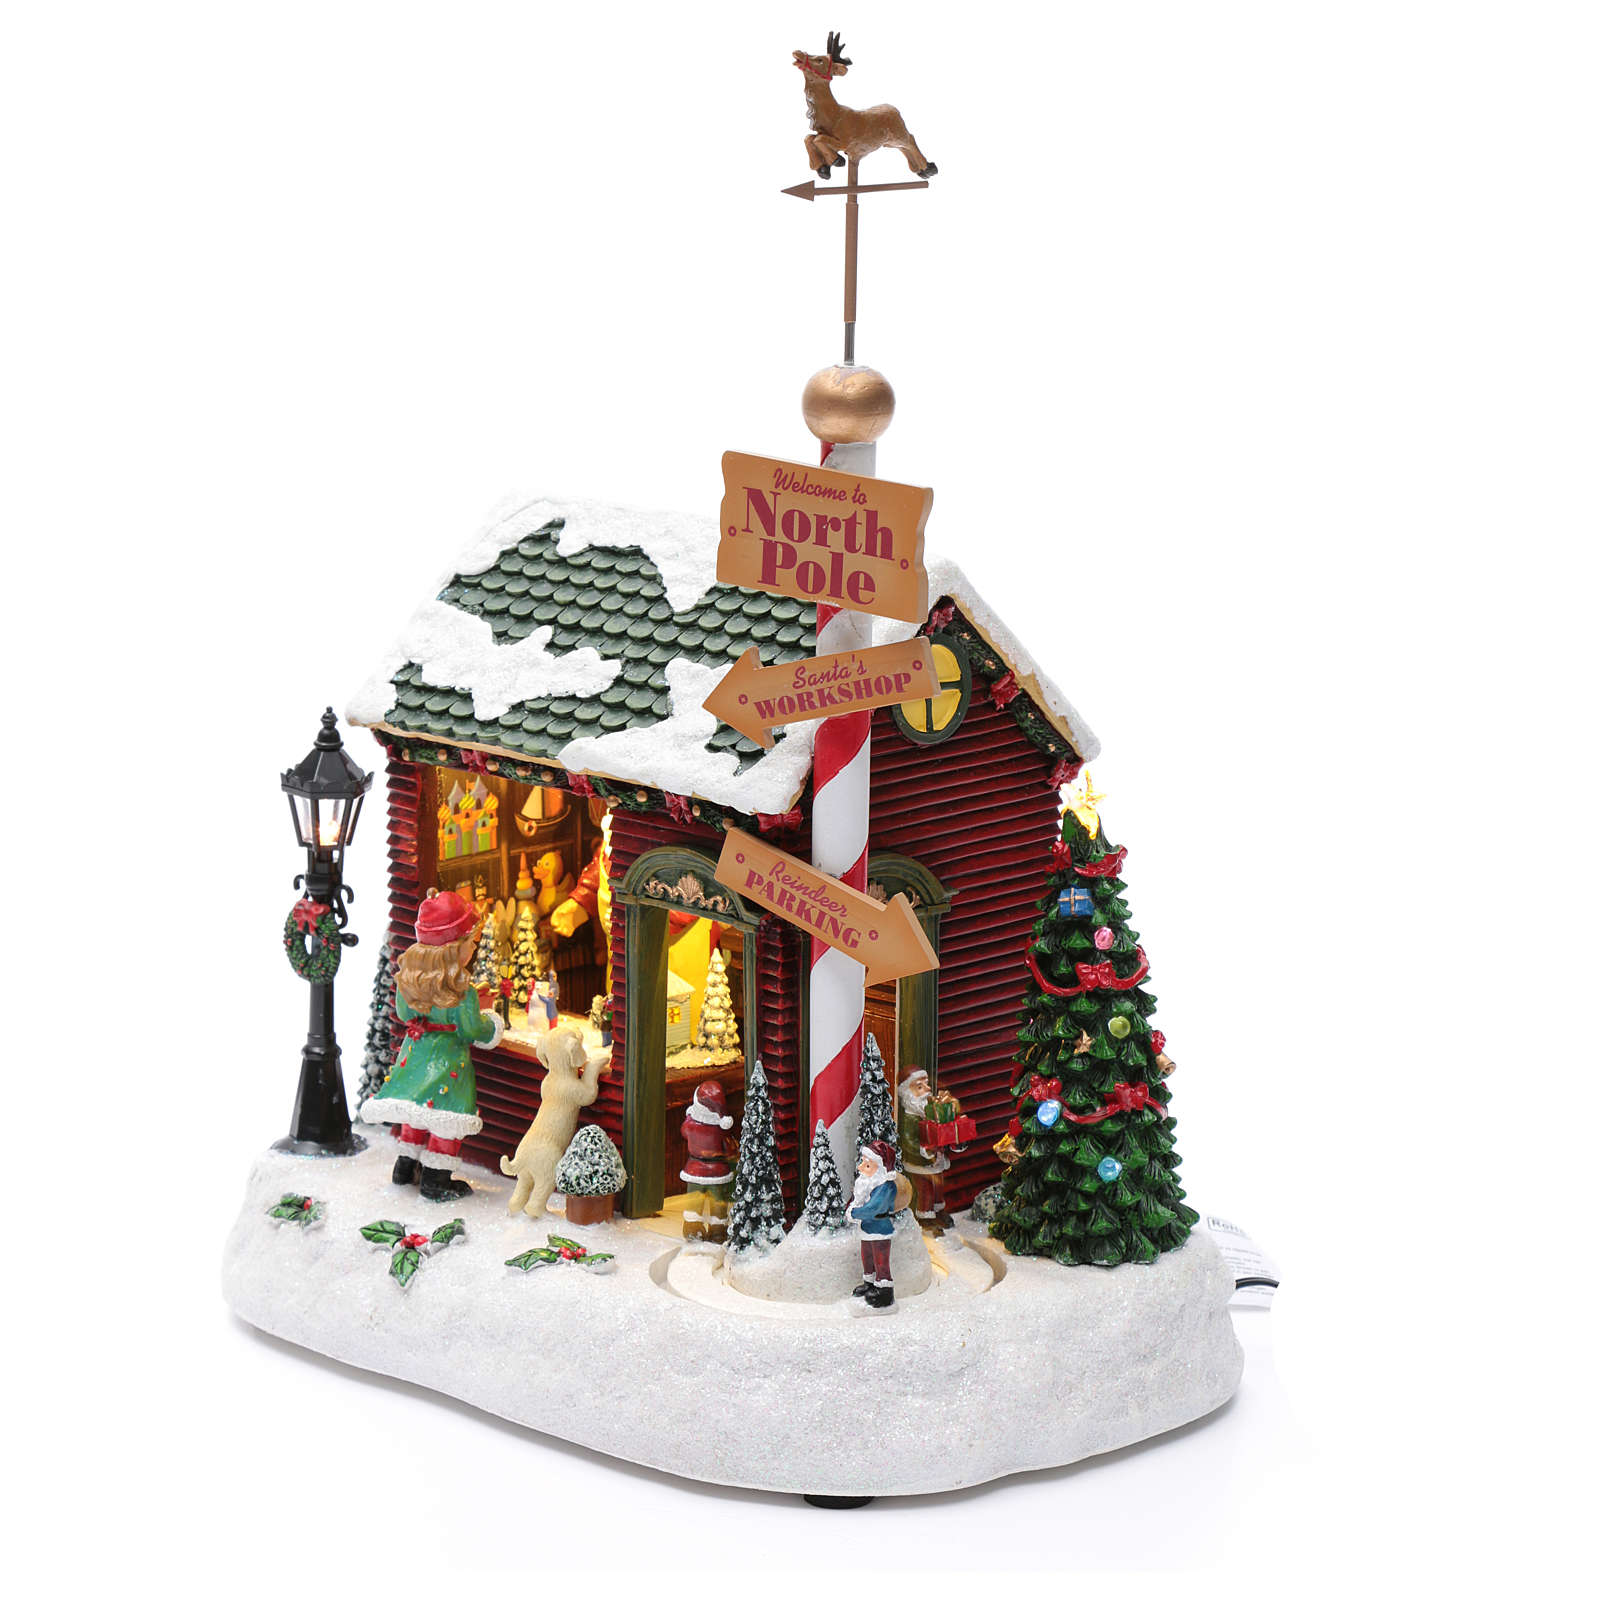 Lighted Christmas village with Santa, rotating elves and music 30x25x17 cm 3